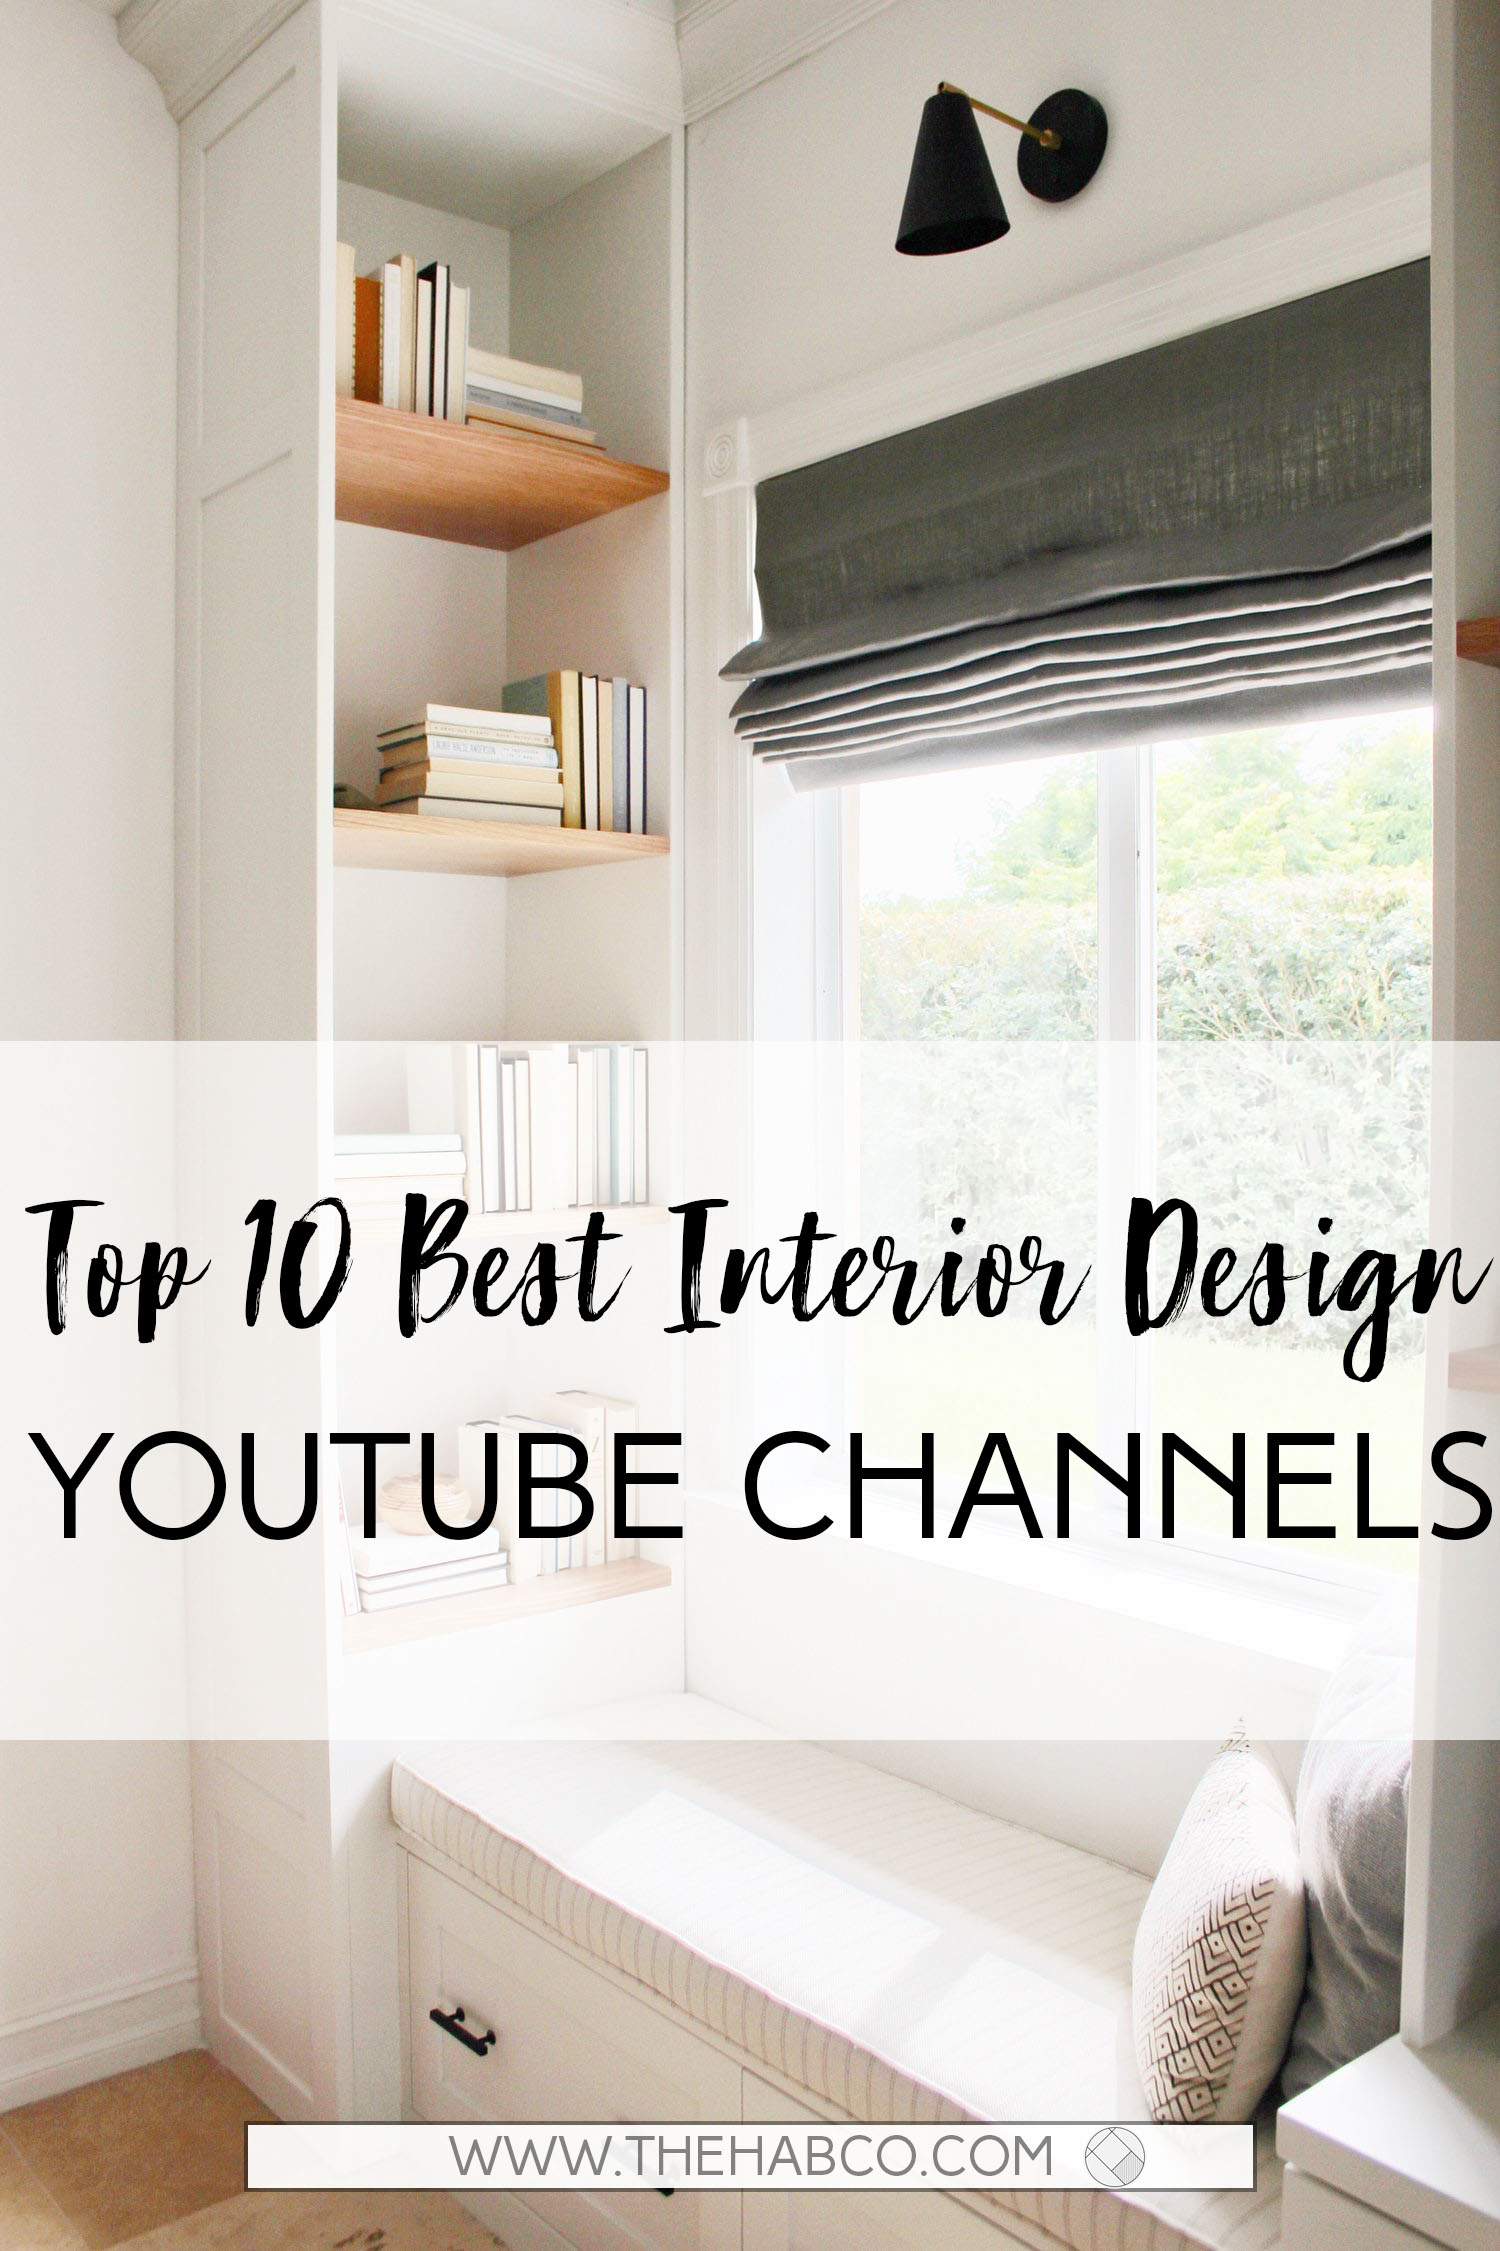 Top 10 Best Interior Design YouTube Channels — The Habitat Collective